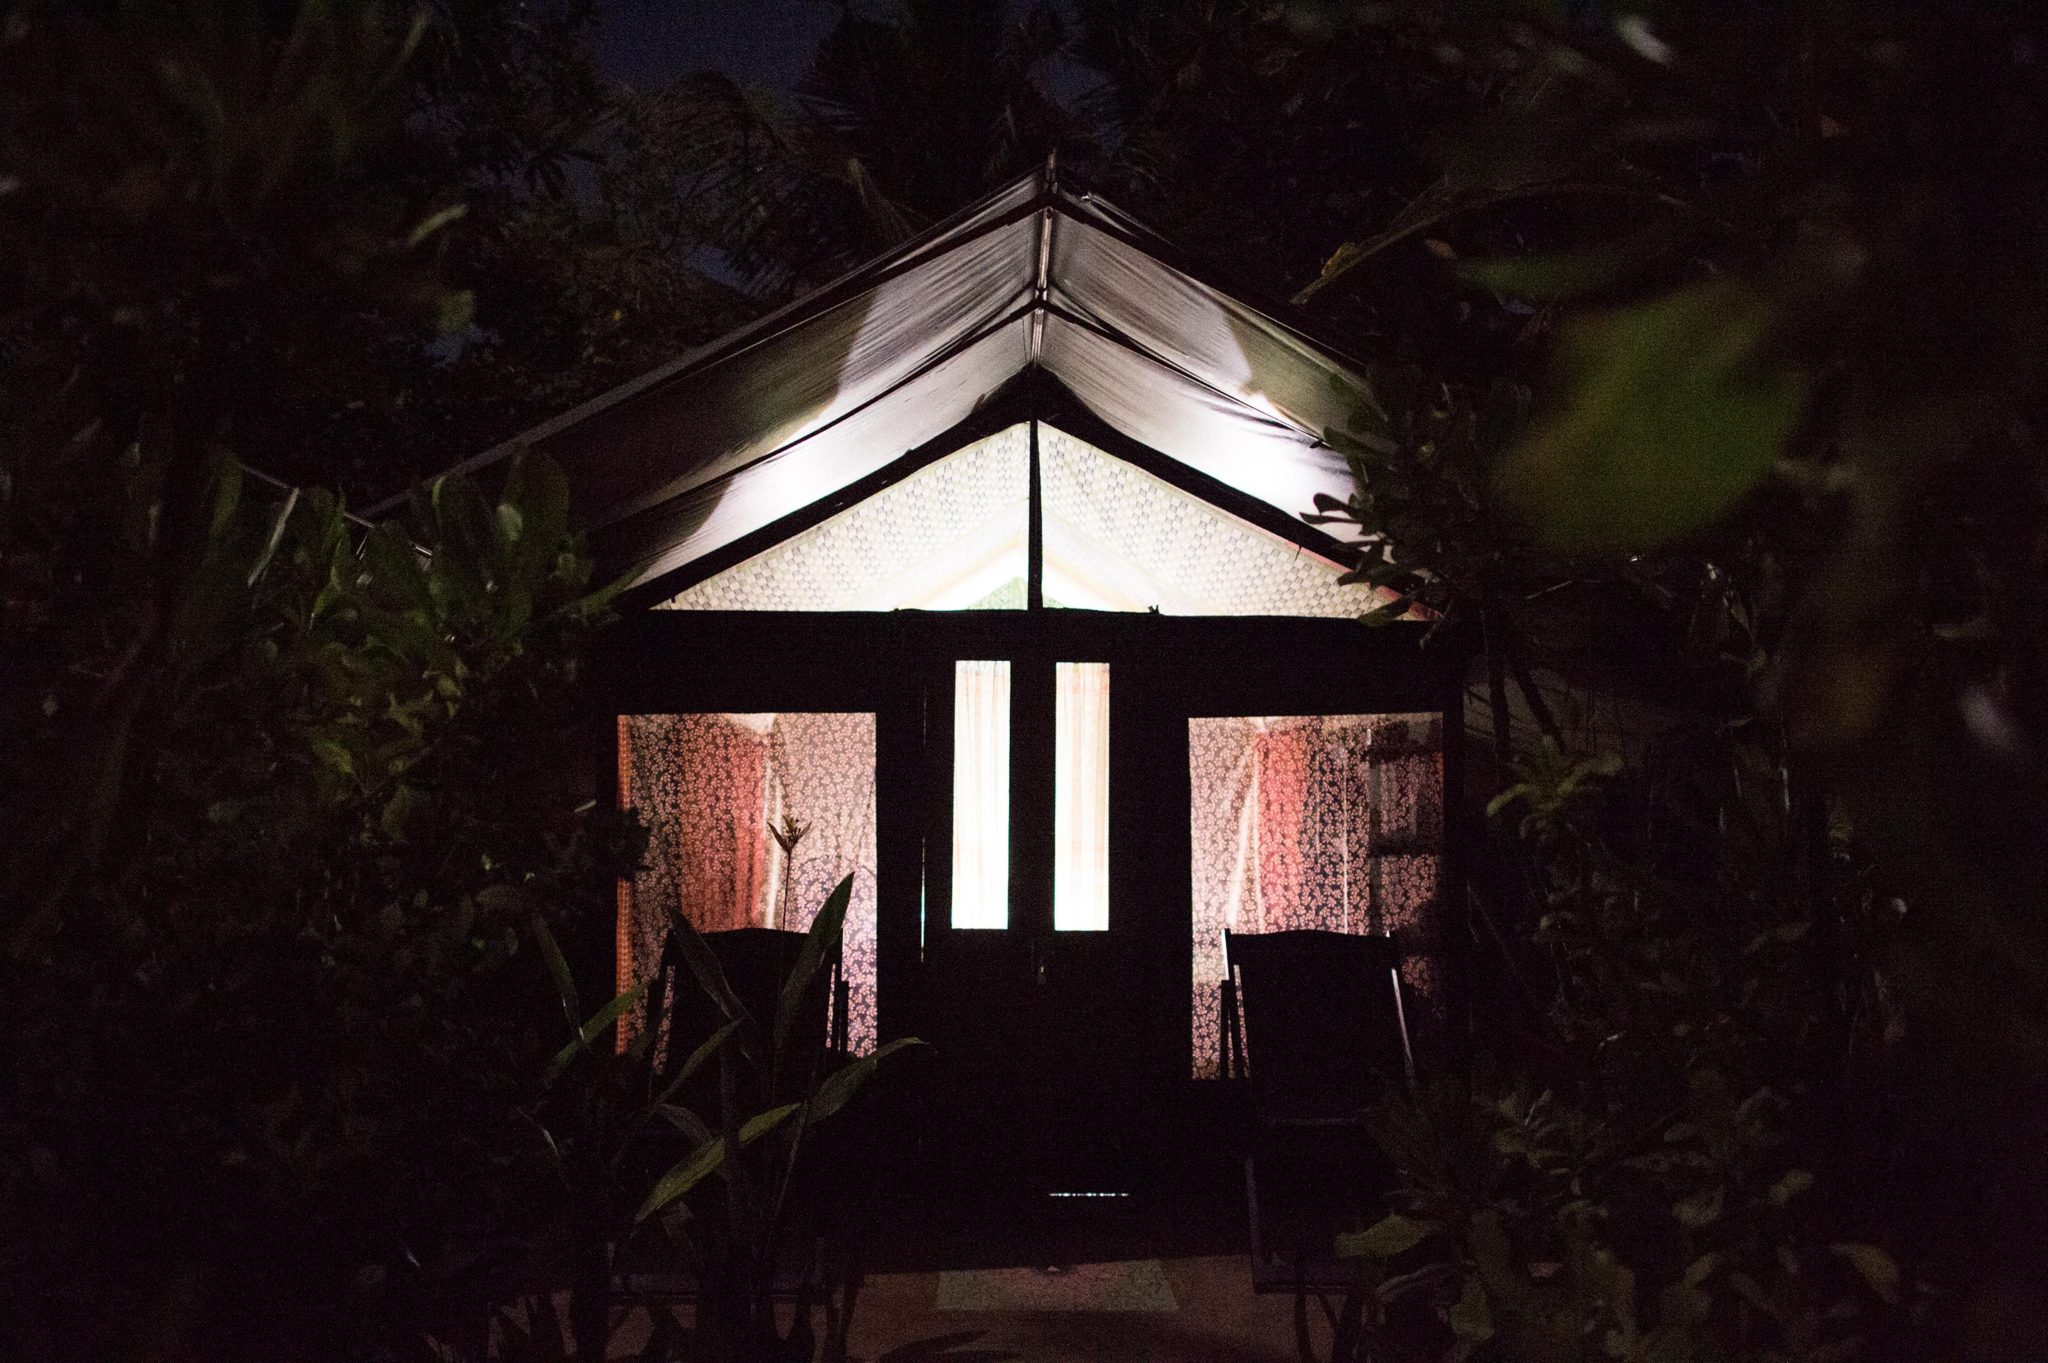 Tent at Camp Poe